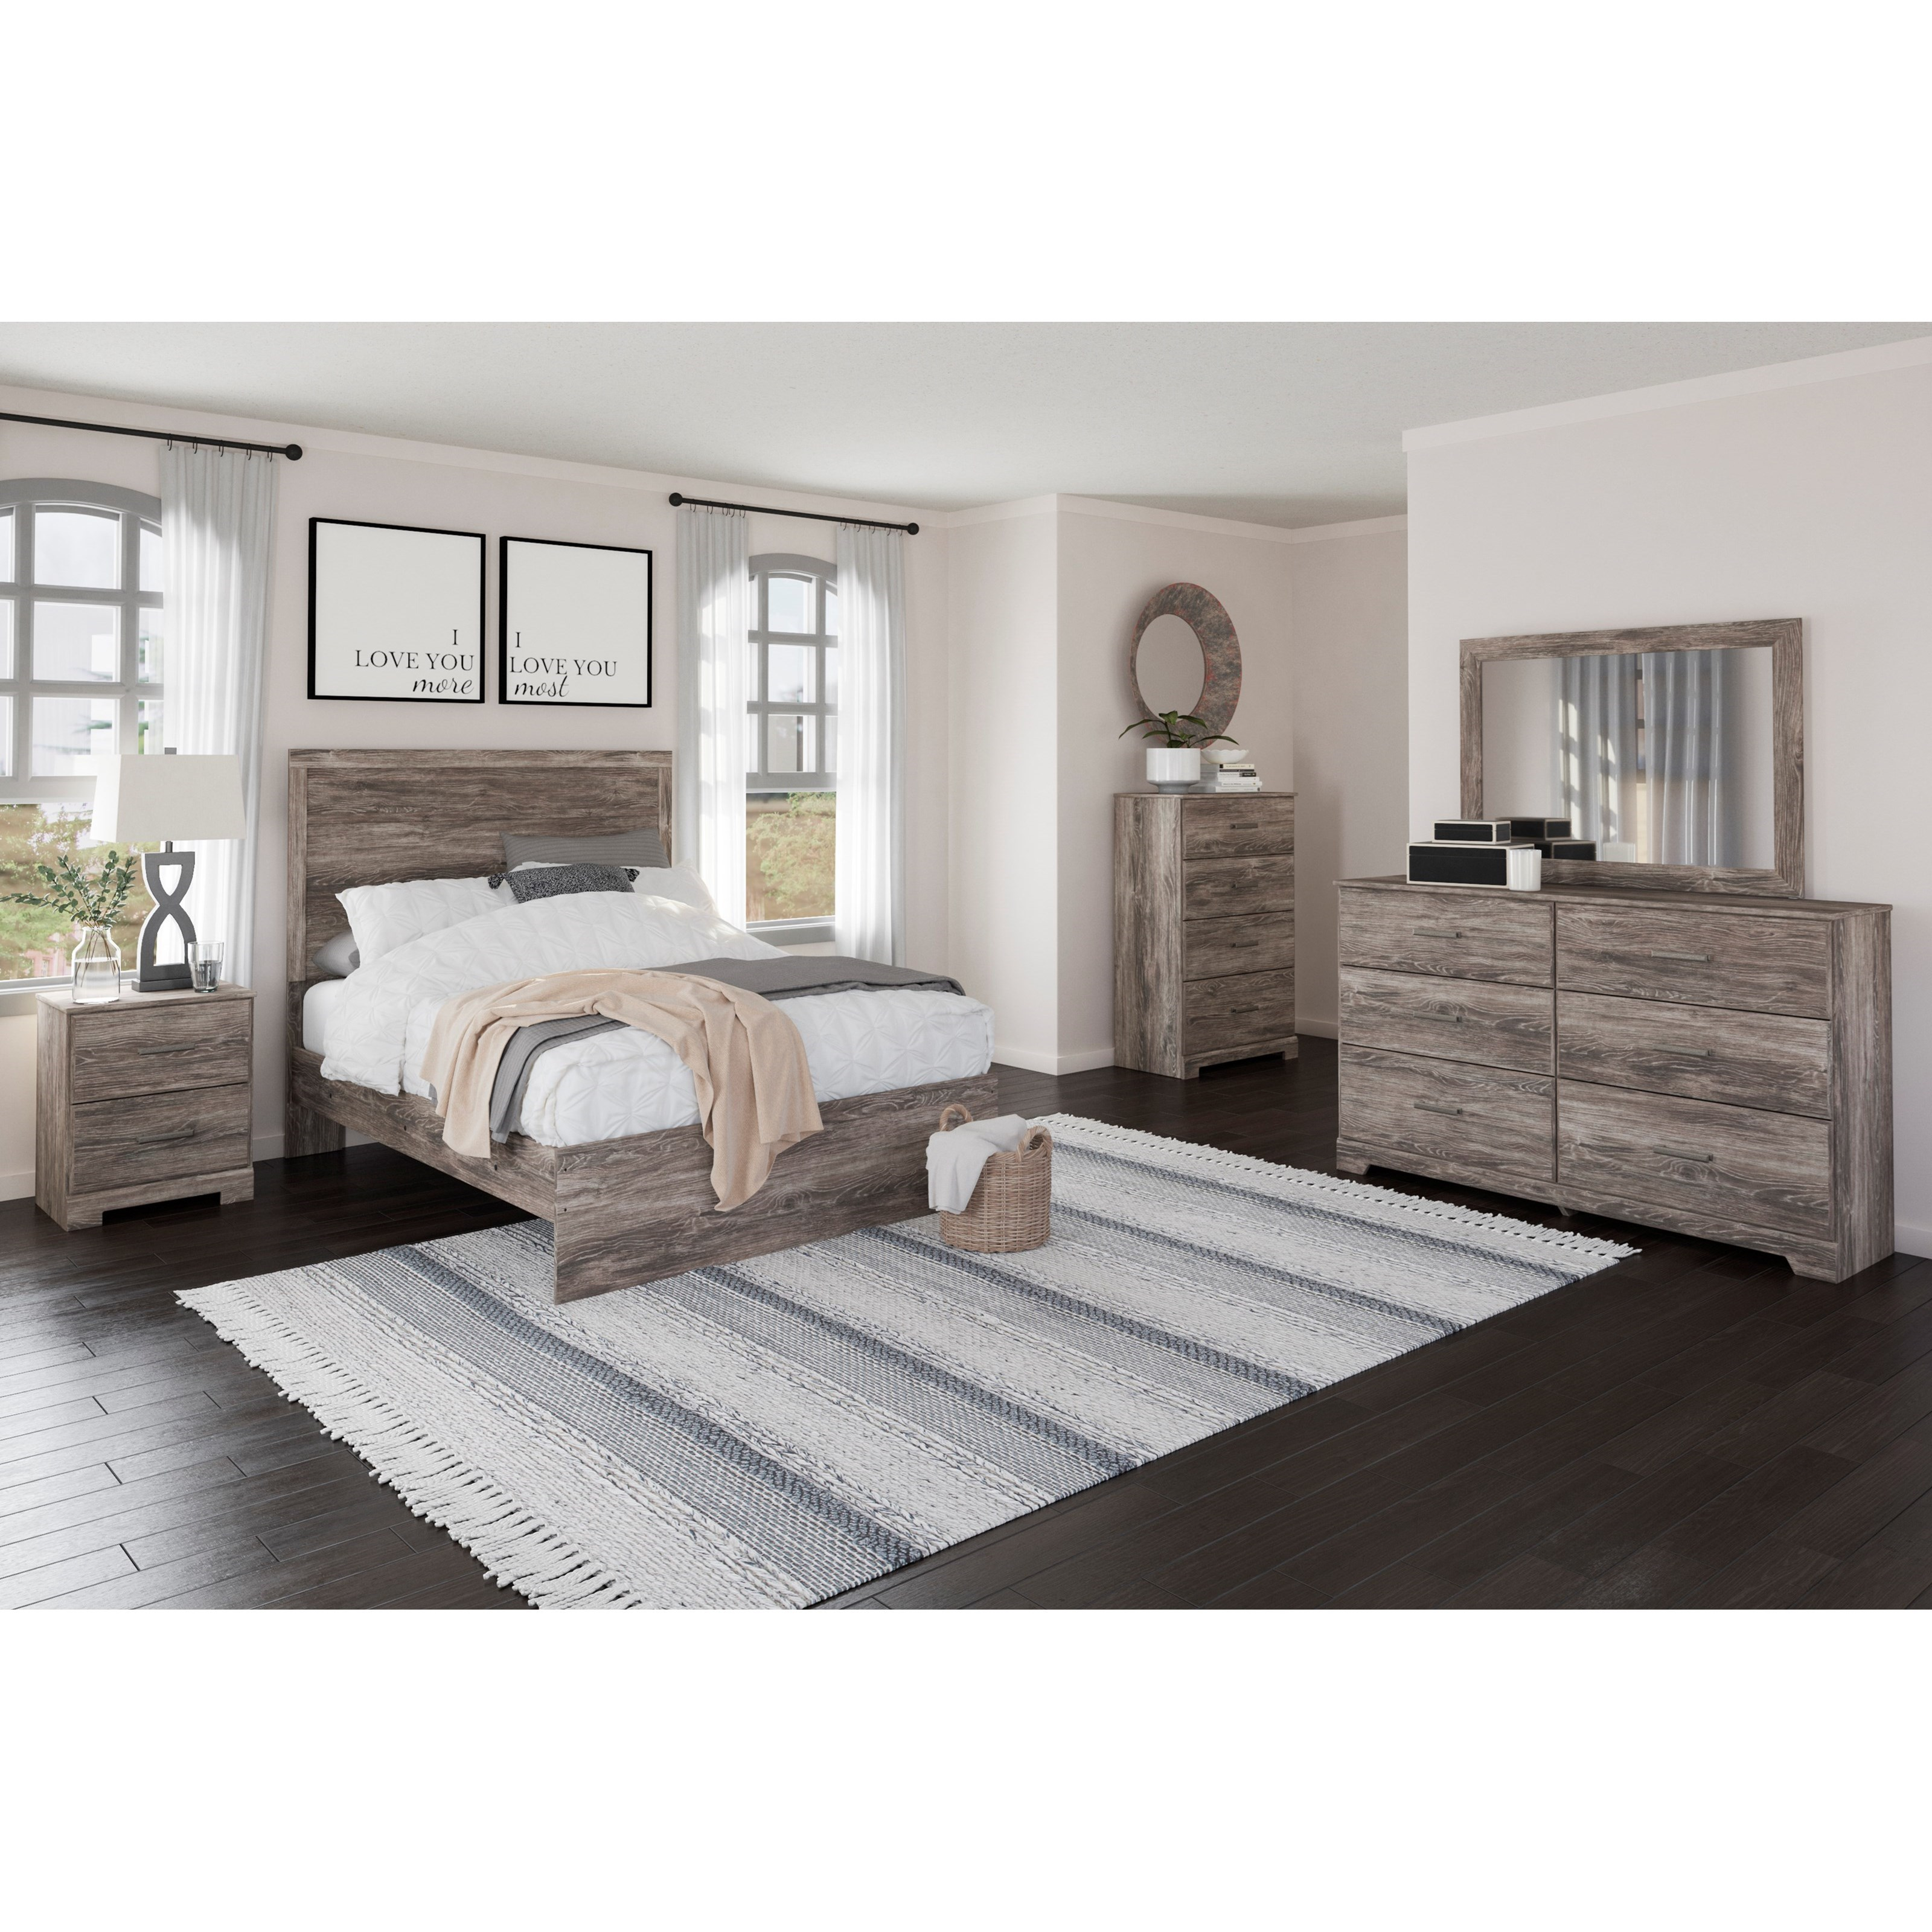 Ralinski Full Bedroom Group by Benchcraft at Virginia Furniture Market